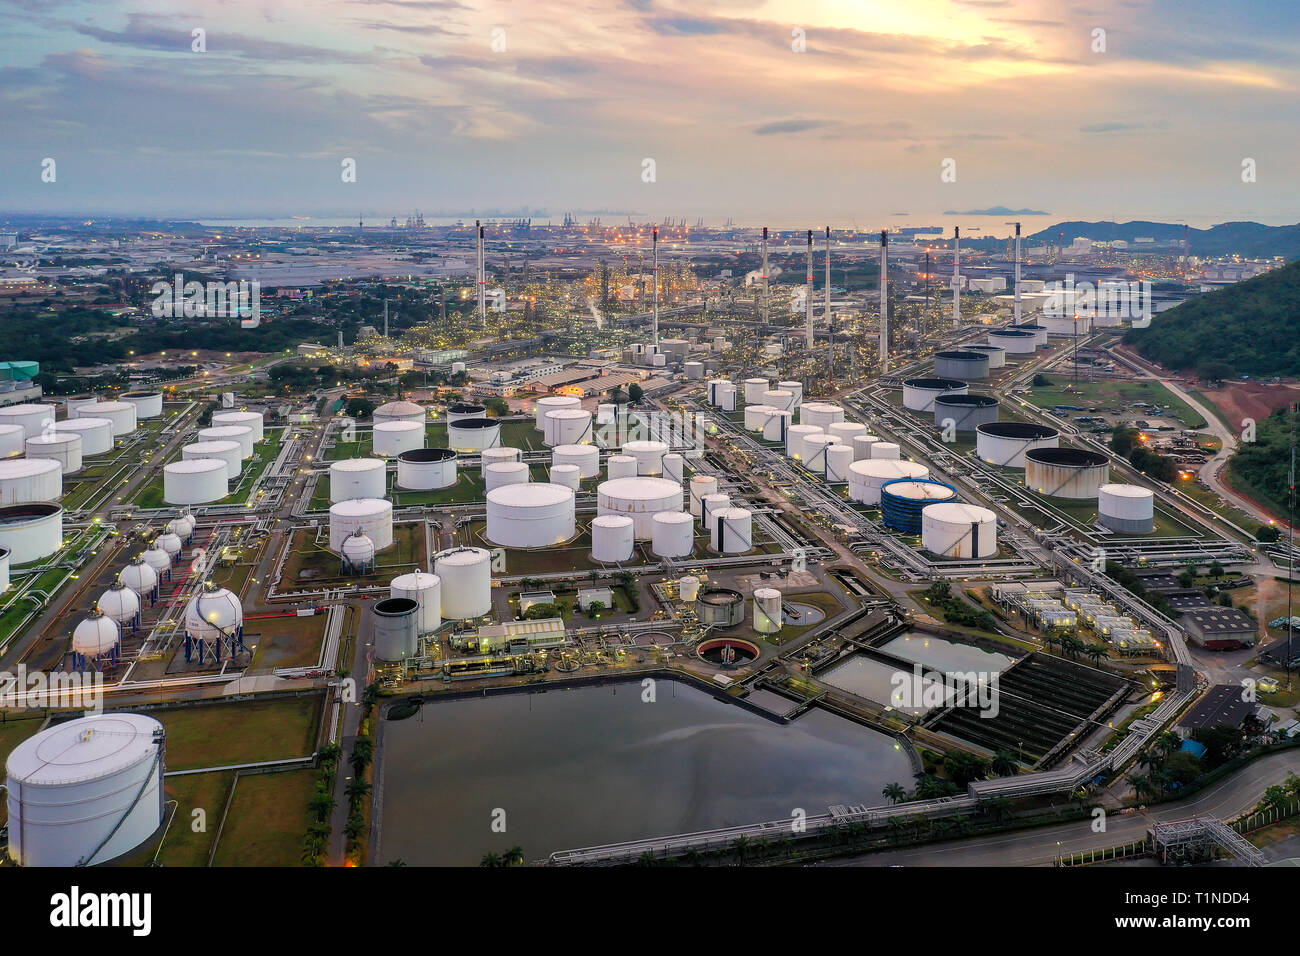 Aerial view of Oil and gas industry - refinery at twilight Stock Photo